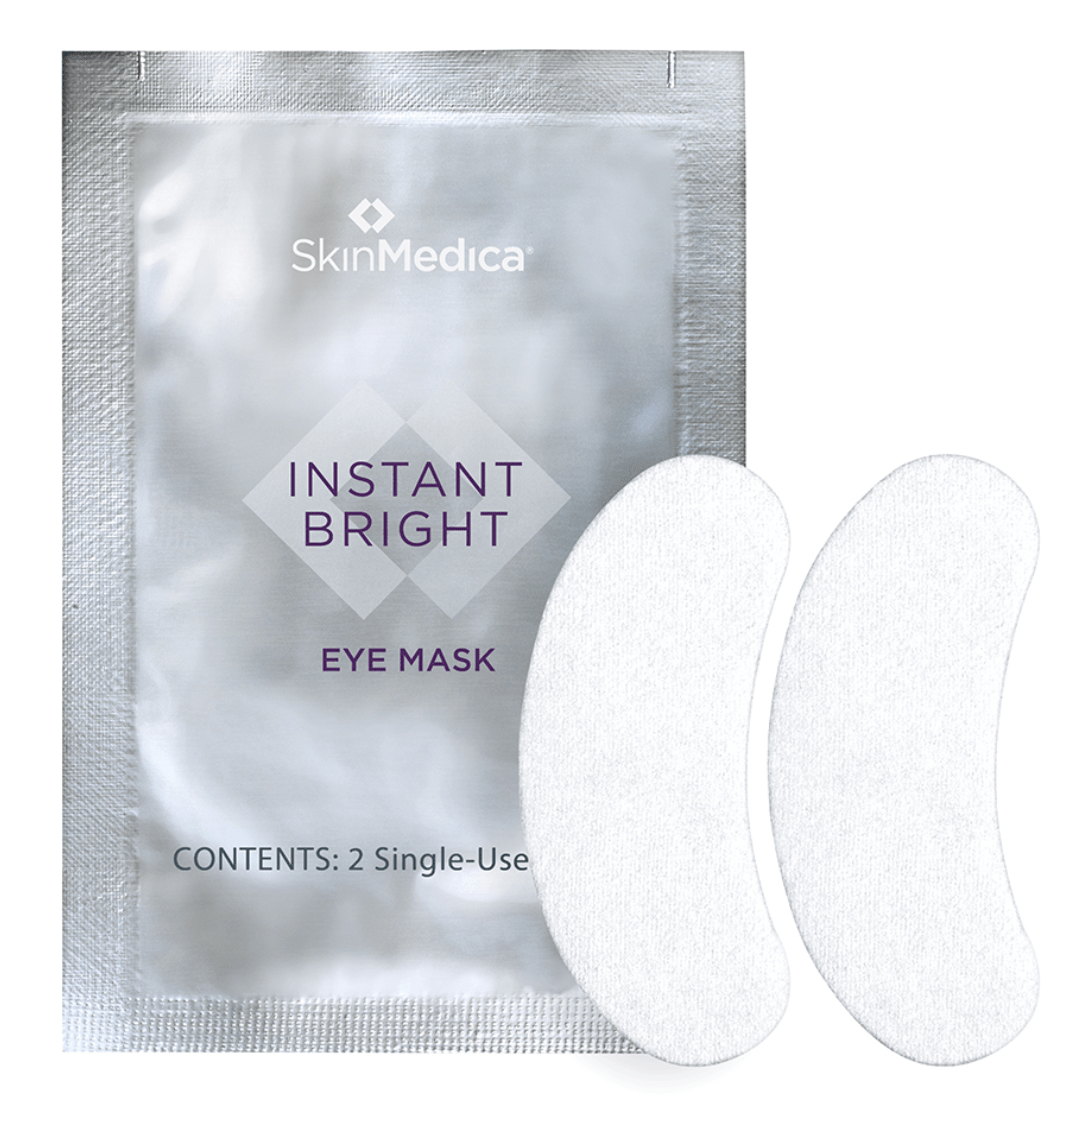 image descriptionSkinMedica - Instant Bright Eye Mask